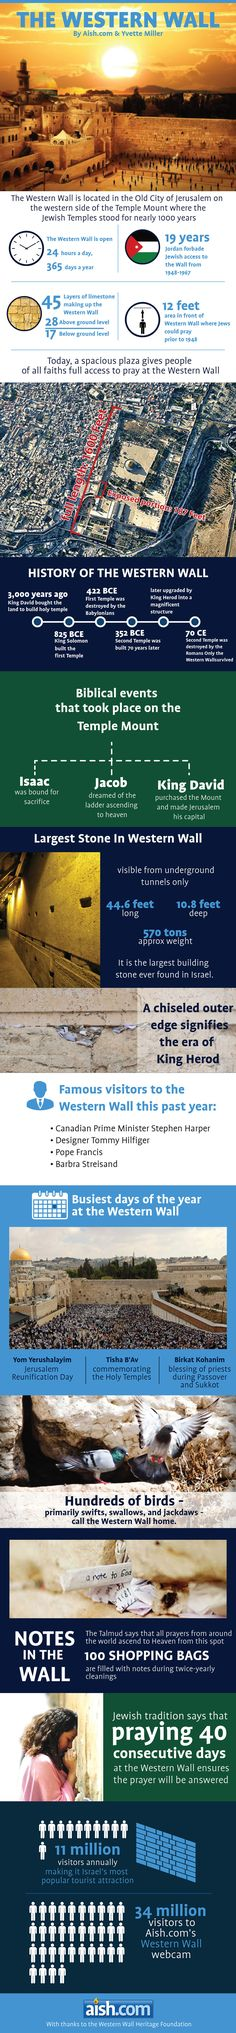 The Western Wall Information #Israel #Jerusalem #Kotel